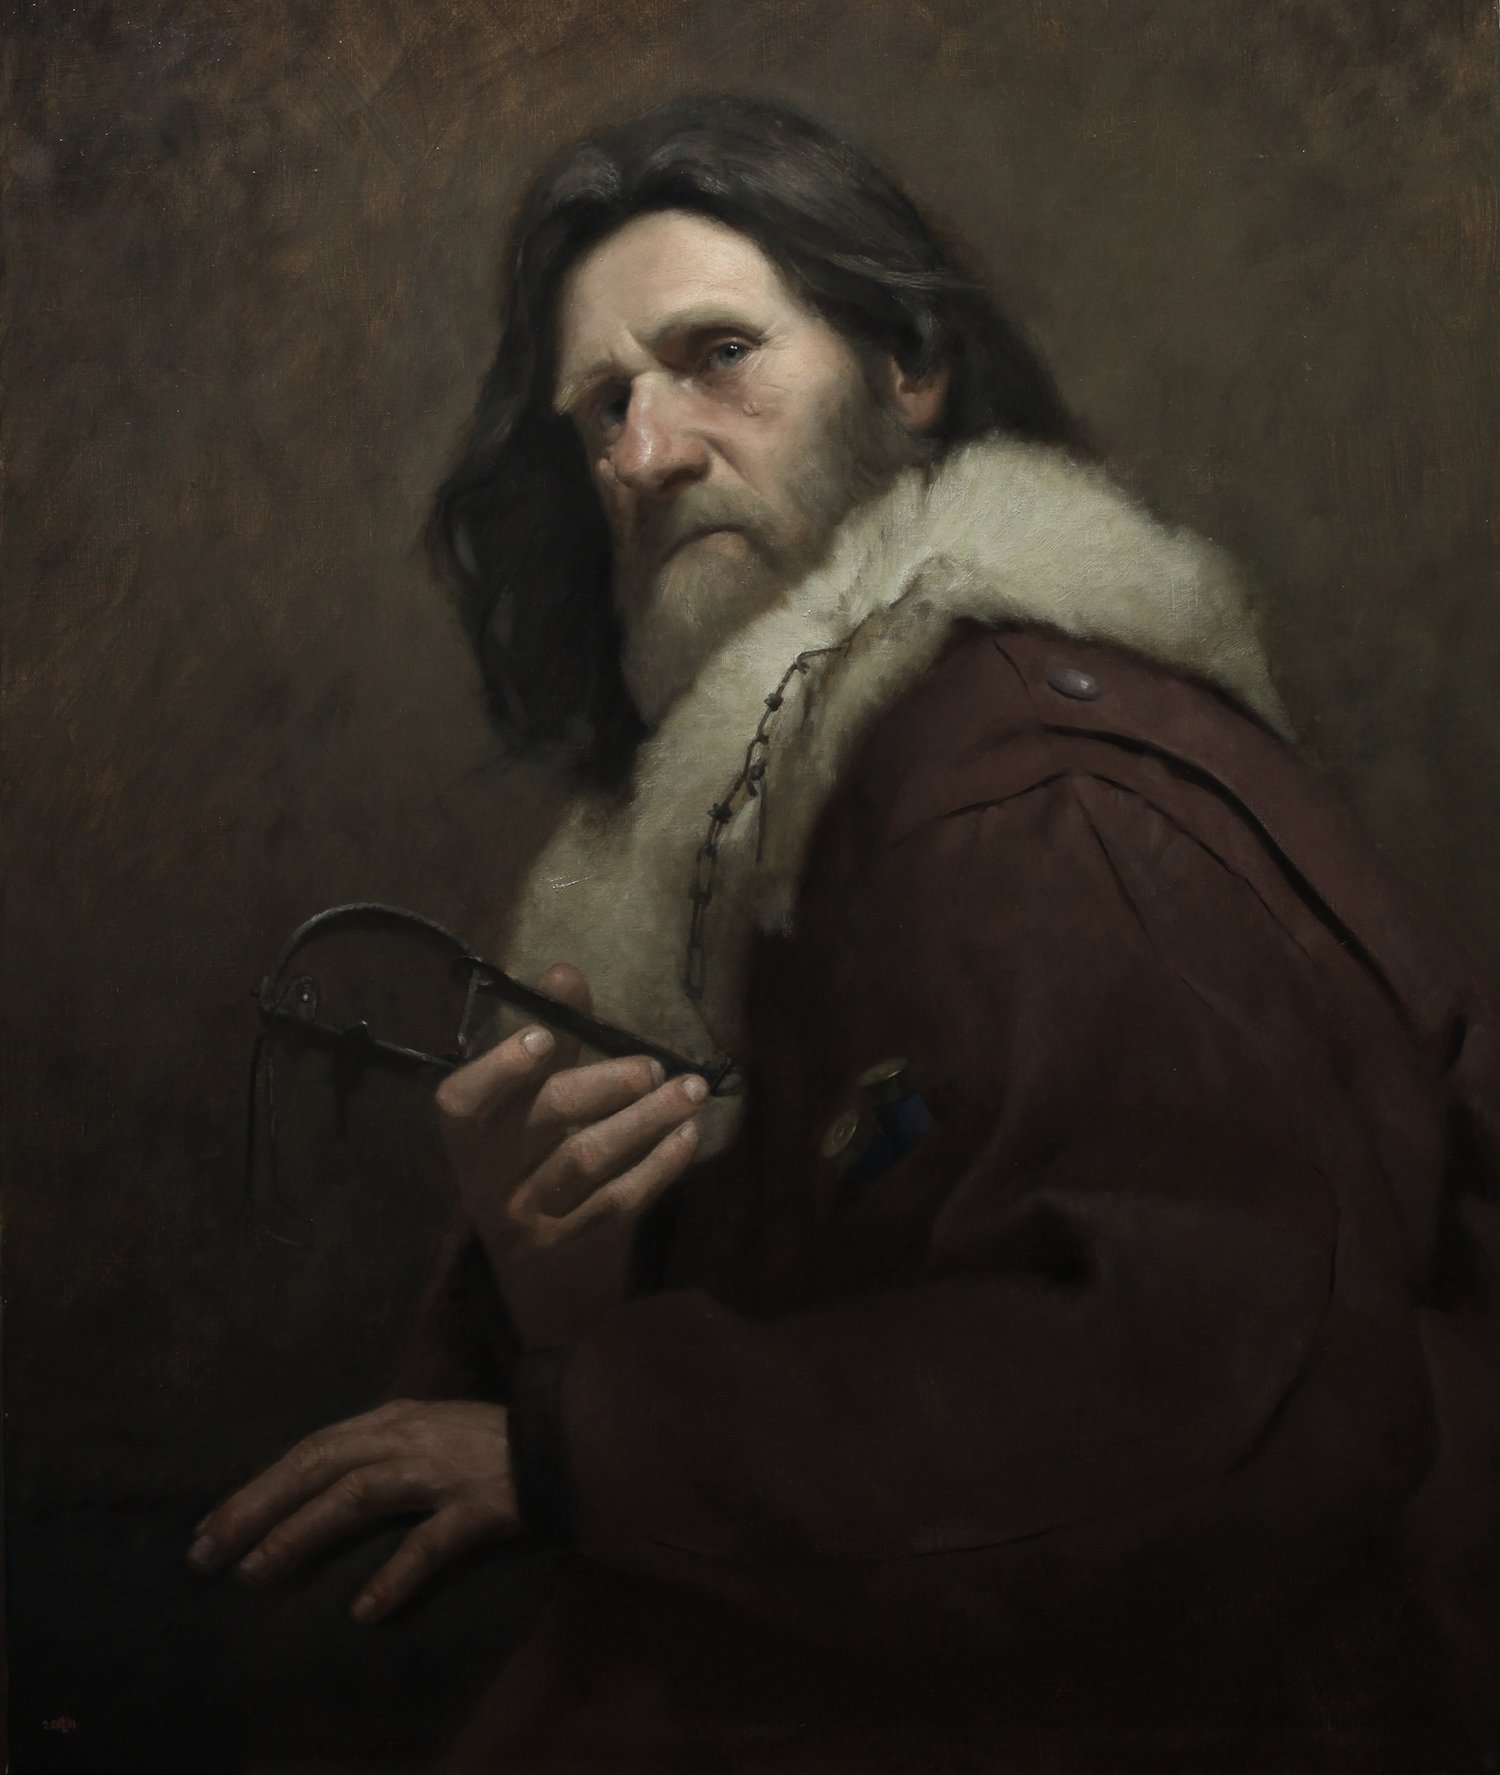 The Trapper, oil painting by david gluck